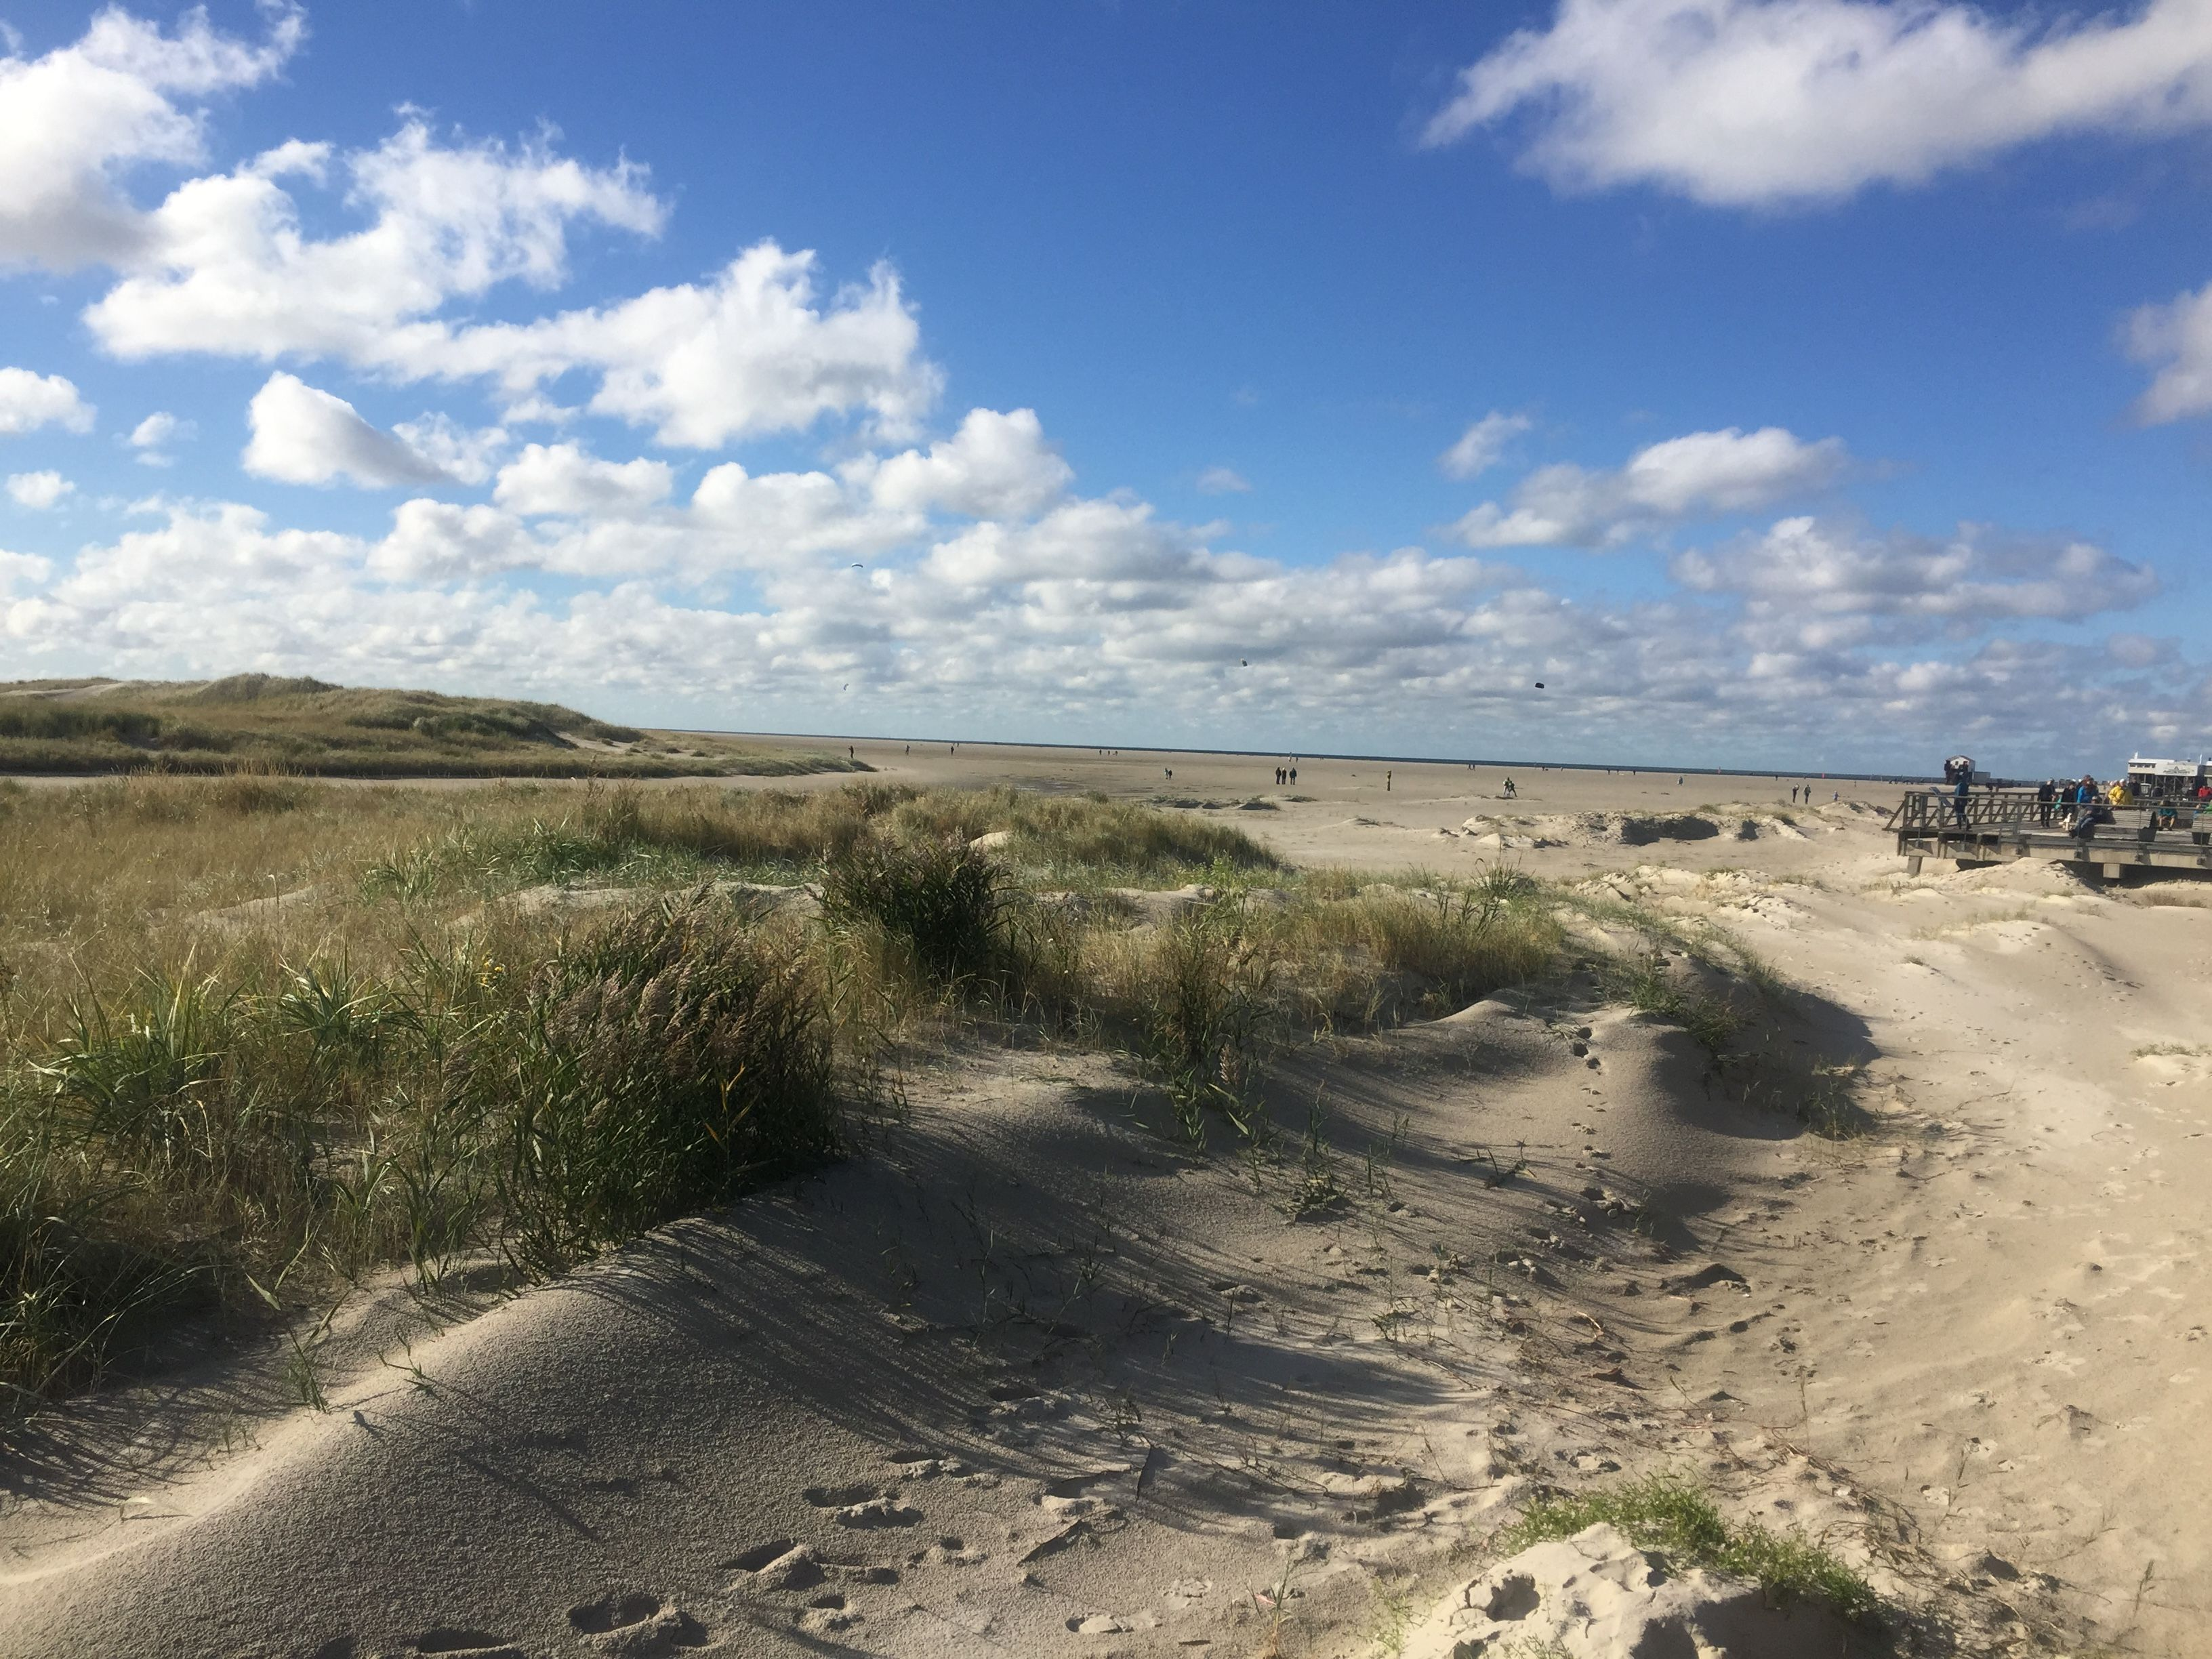 St. Peter Ording Herbst am Strand